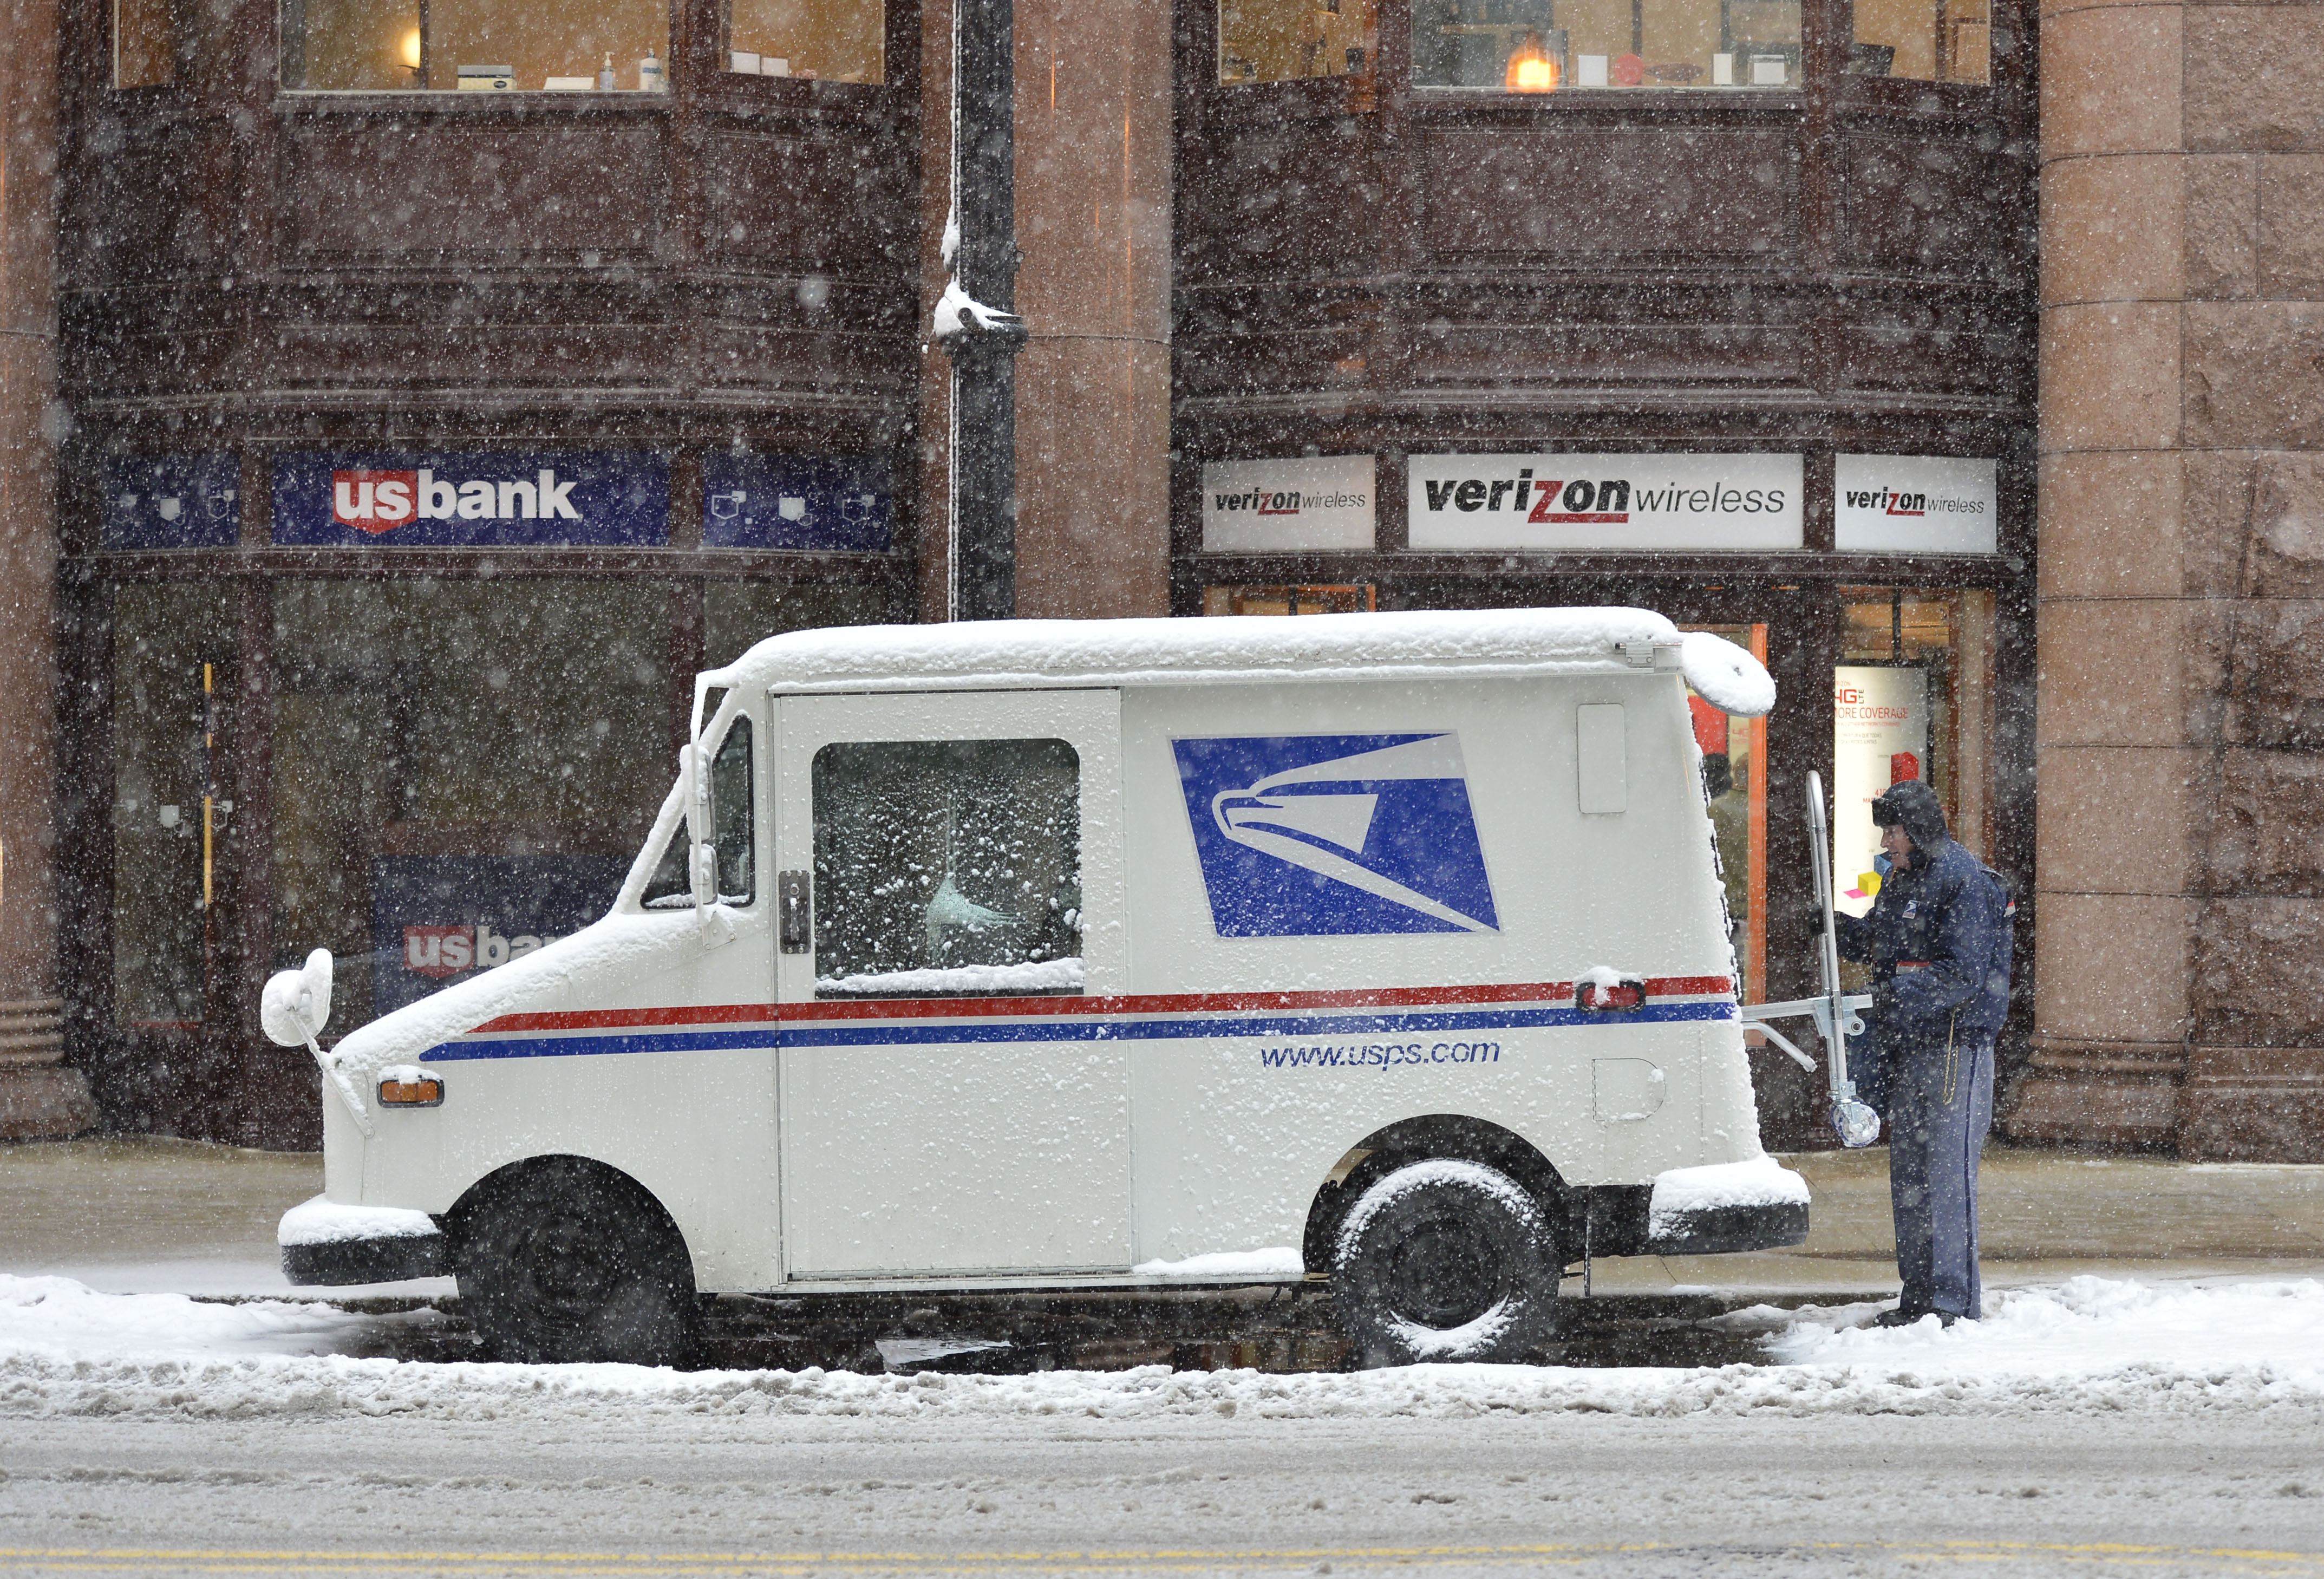 Just like the USPS, we don't take Saturdays off